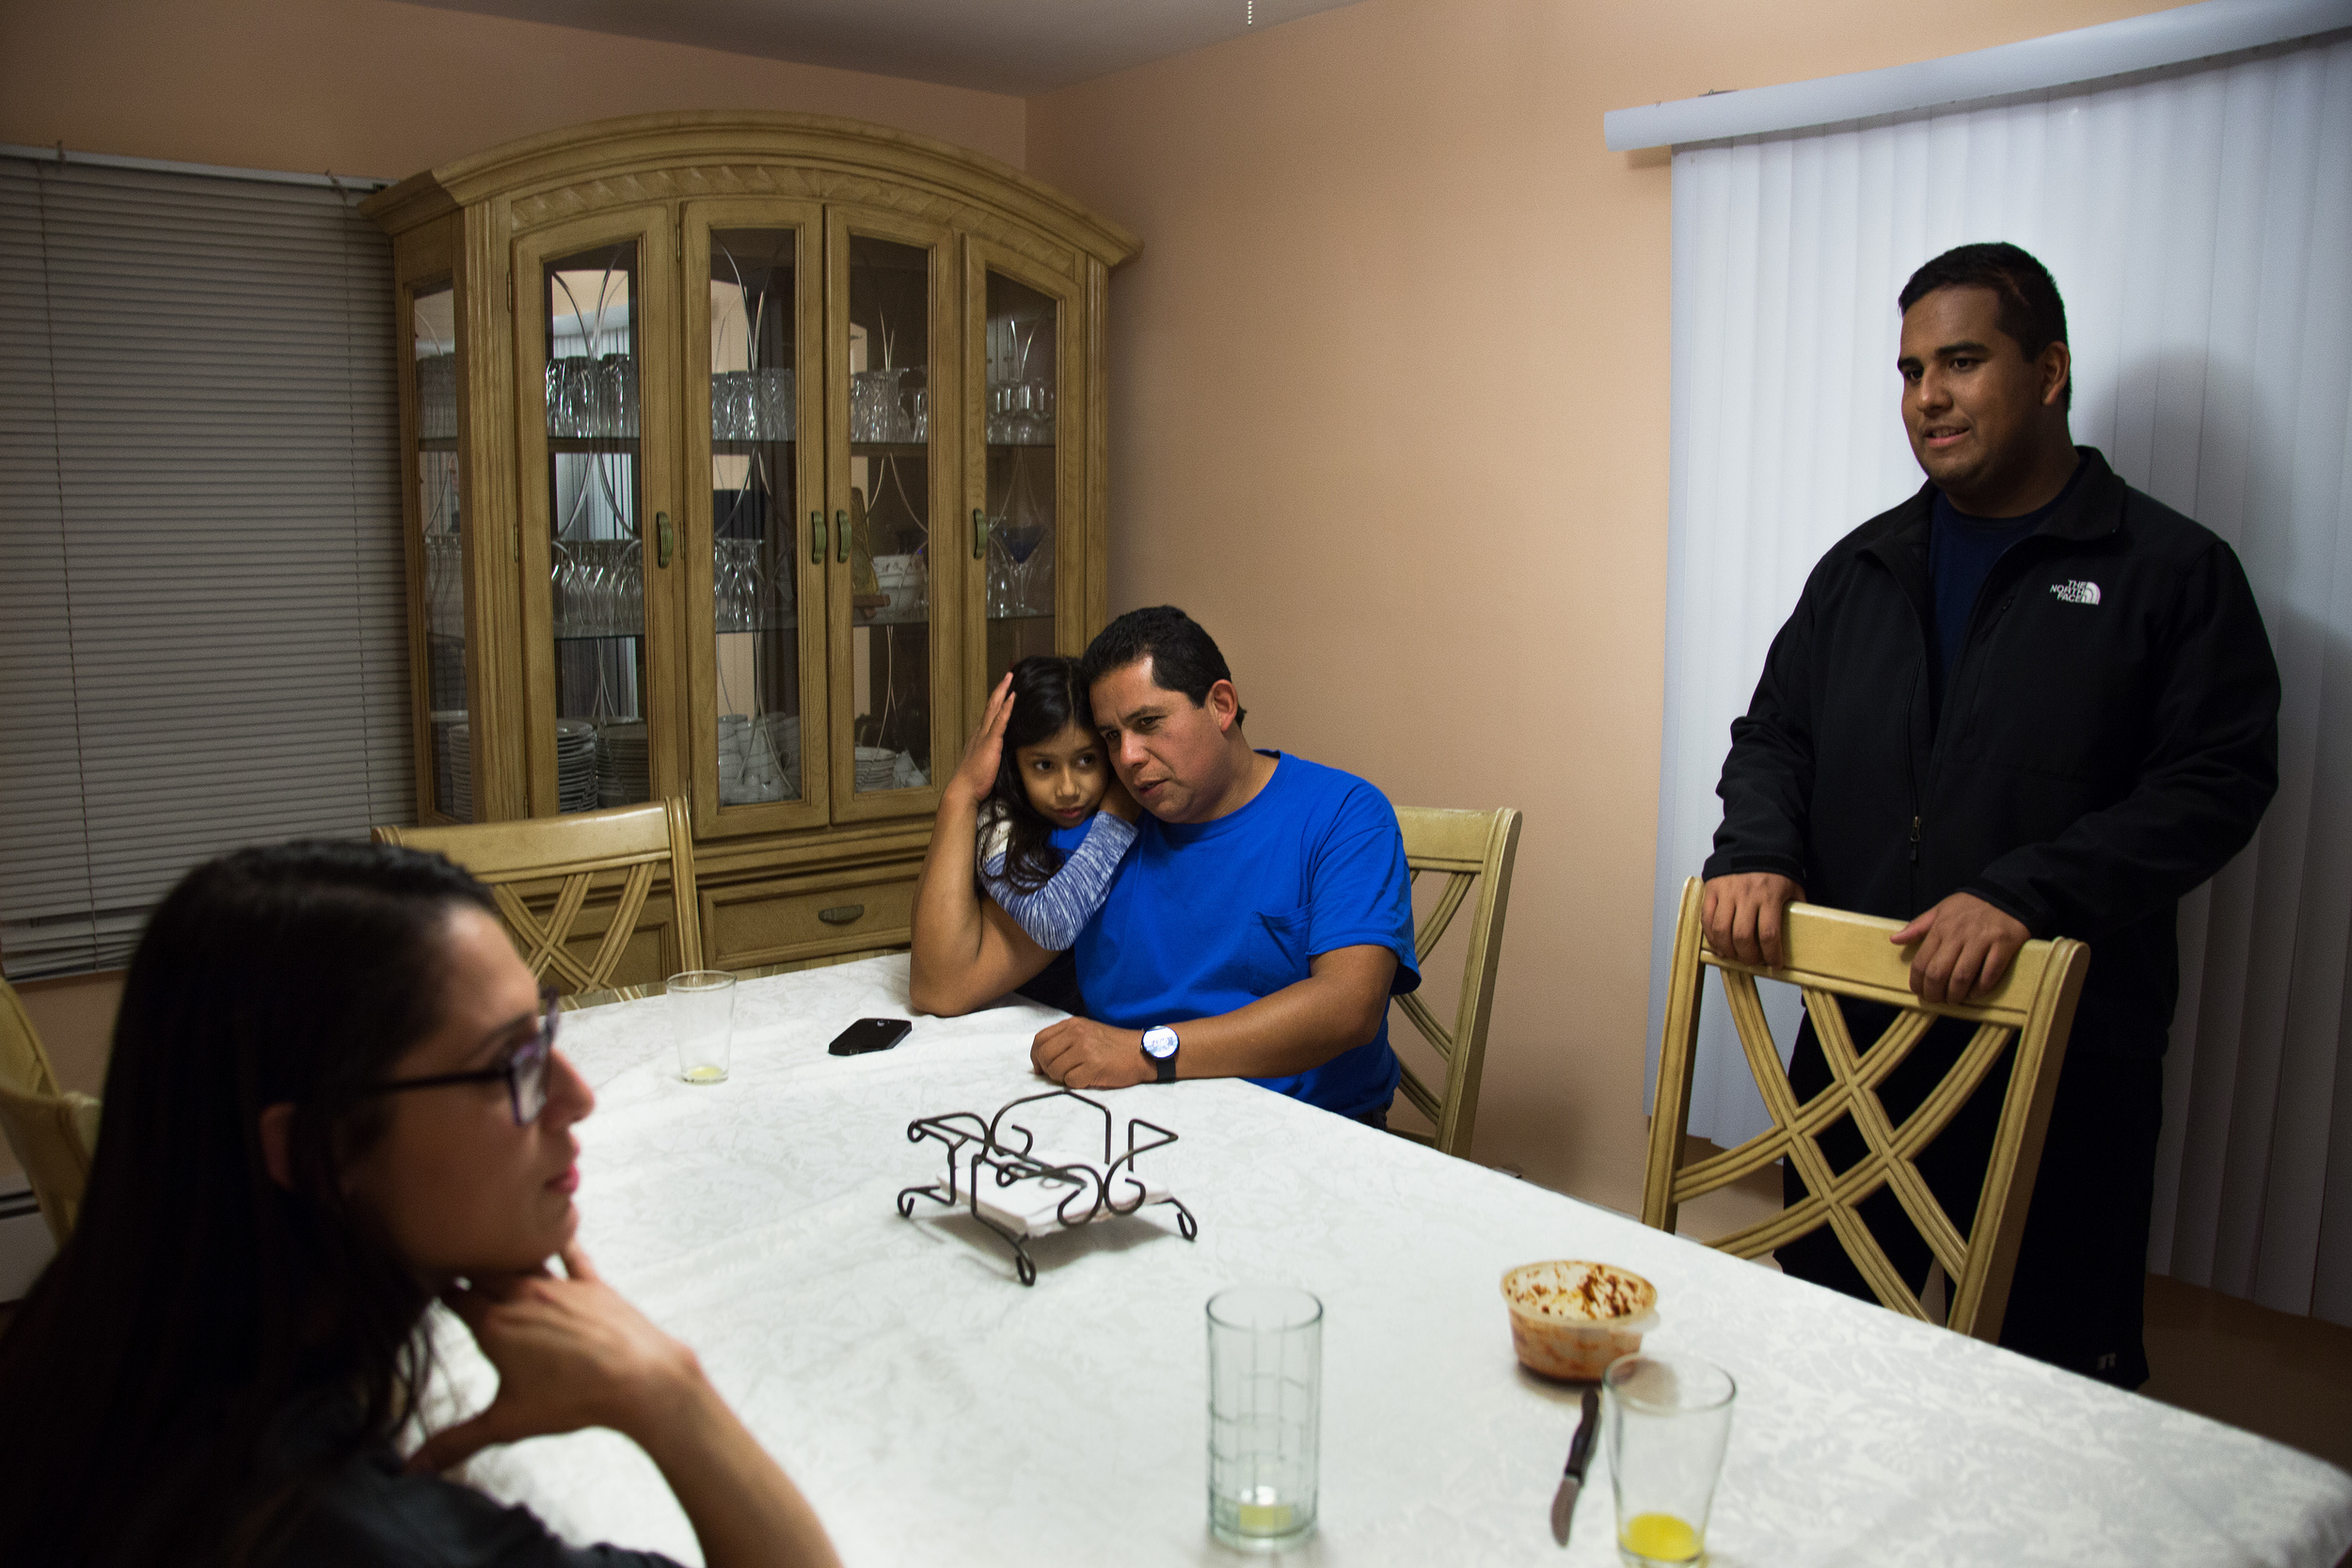 Roberto Silva, center, embraces his daughter Elizabeth, 11, as the family including Edwin Silva, 22, right, his mother Aida, not pictured, and Adrianna Beltran, 21, left, a family friend, come together around the dinner table to converse about their day.